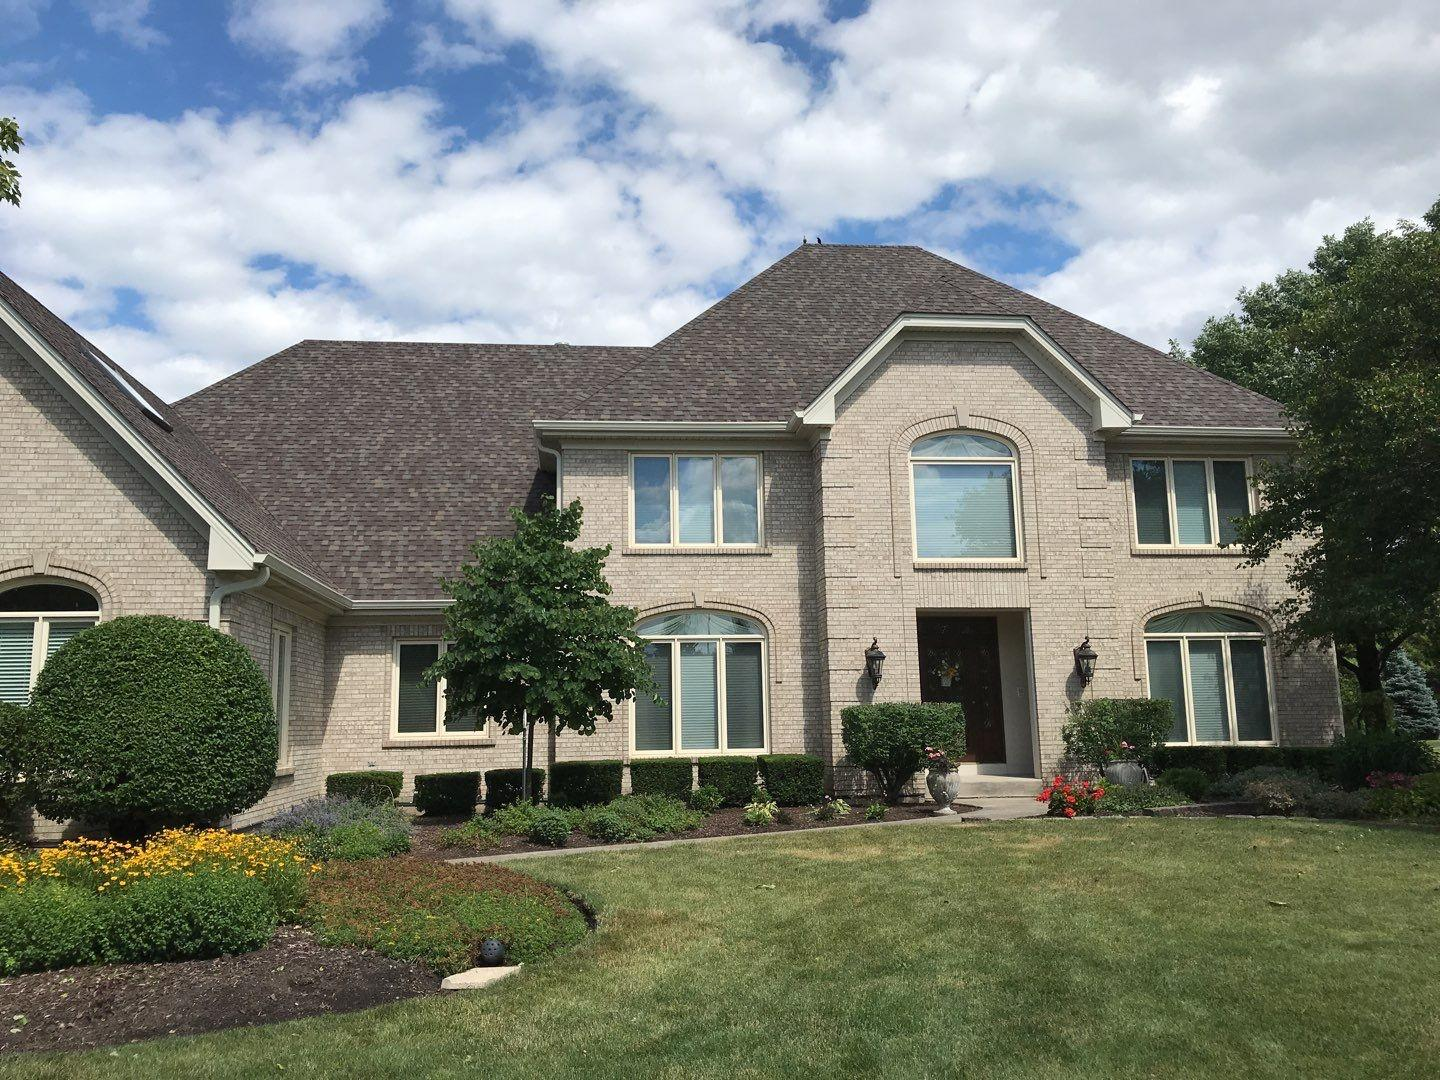 Stan S Roofing Amp Siding Roof Replacement Certainteed